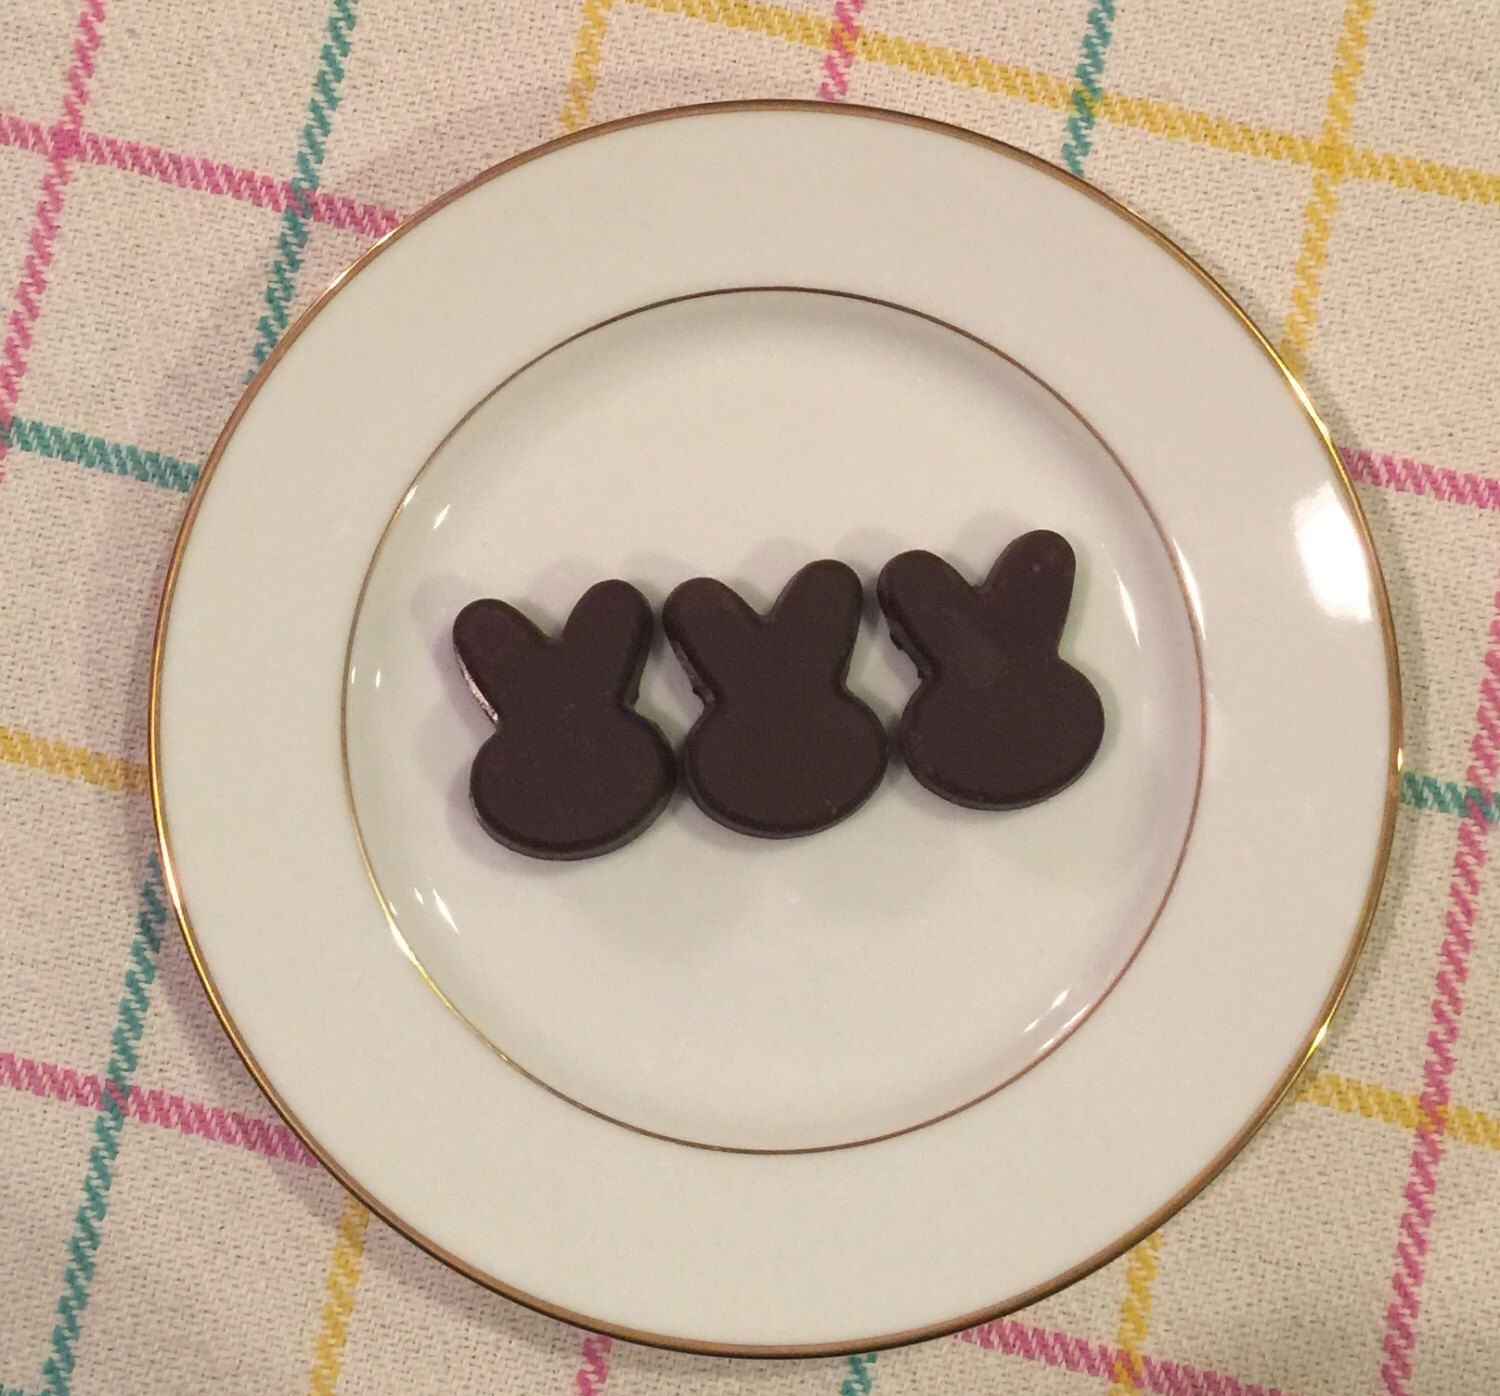 Chocolate bunny candy bunny easter candy allergy